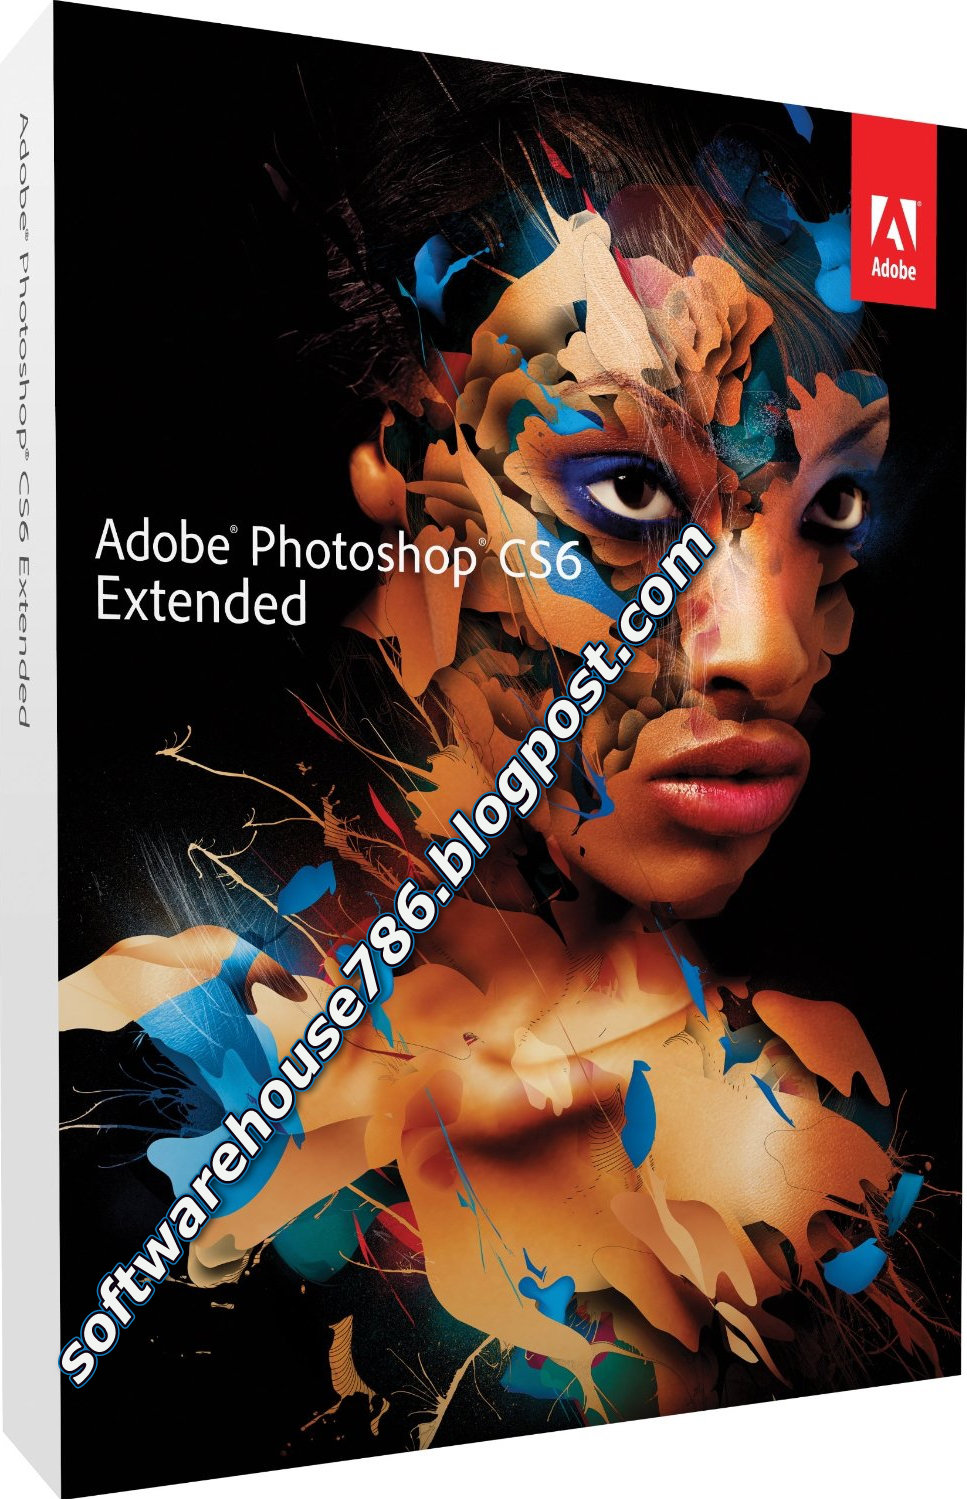 Downloading Photoshop CS6 Extended Trial